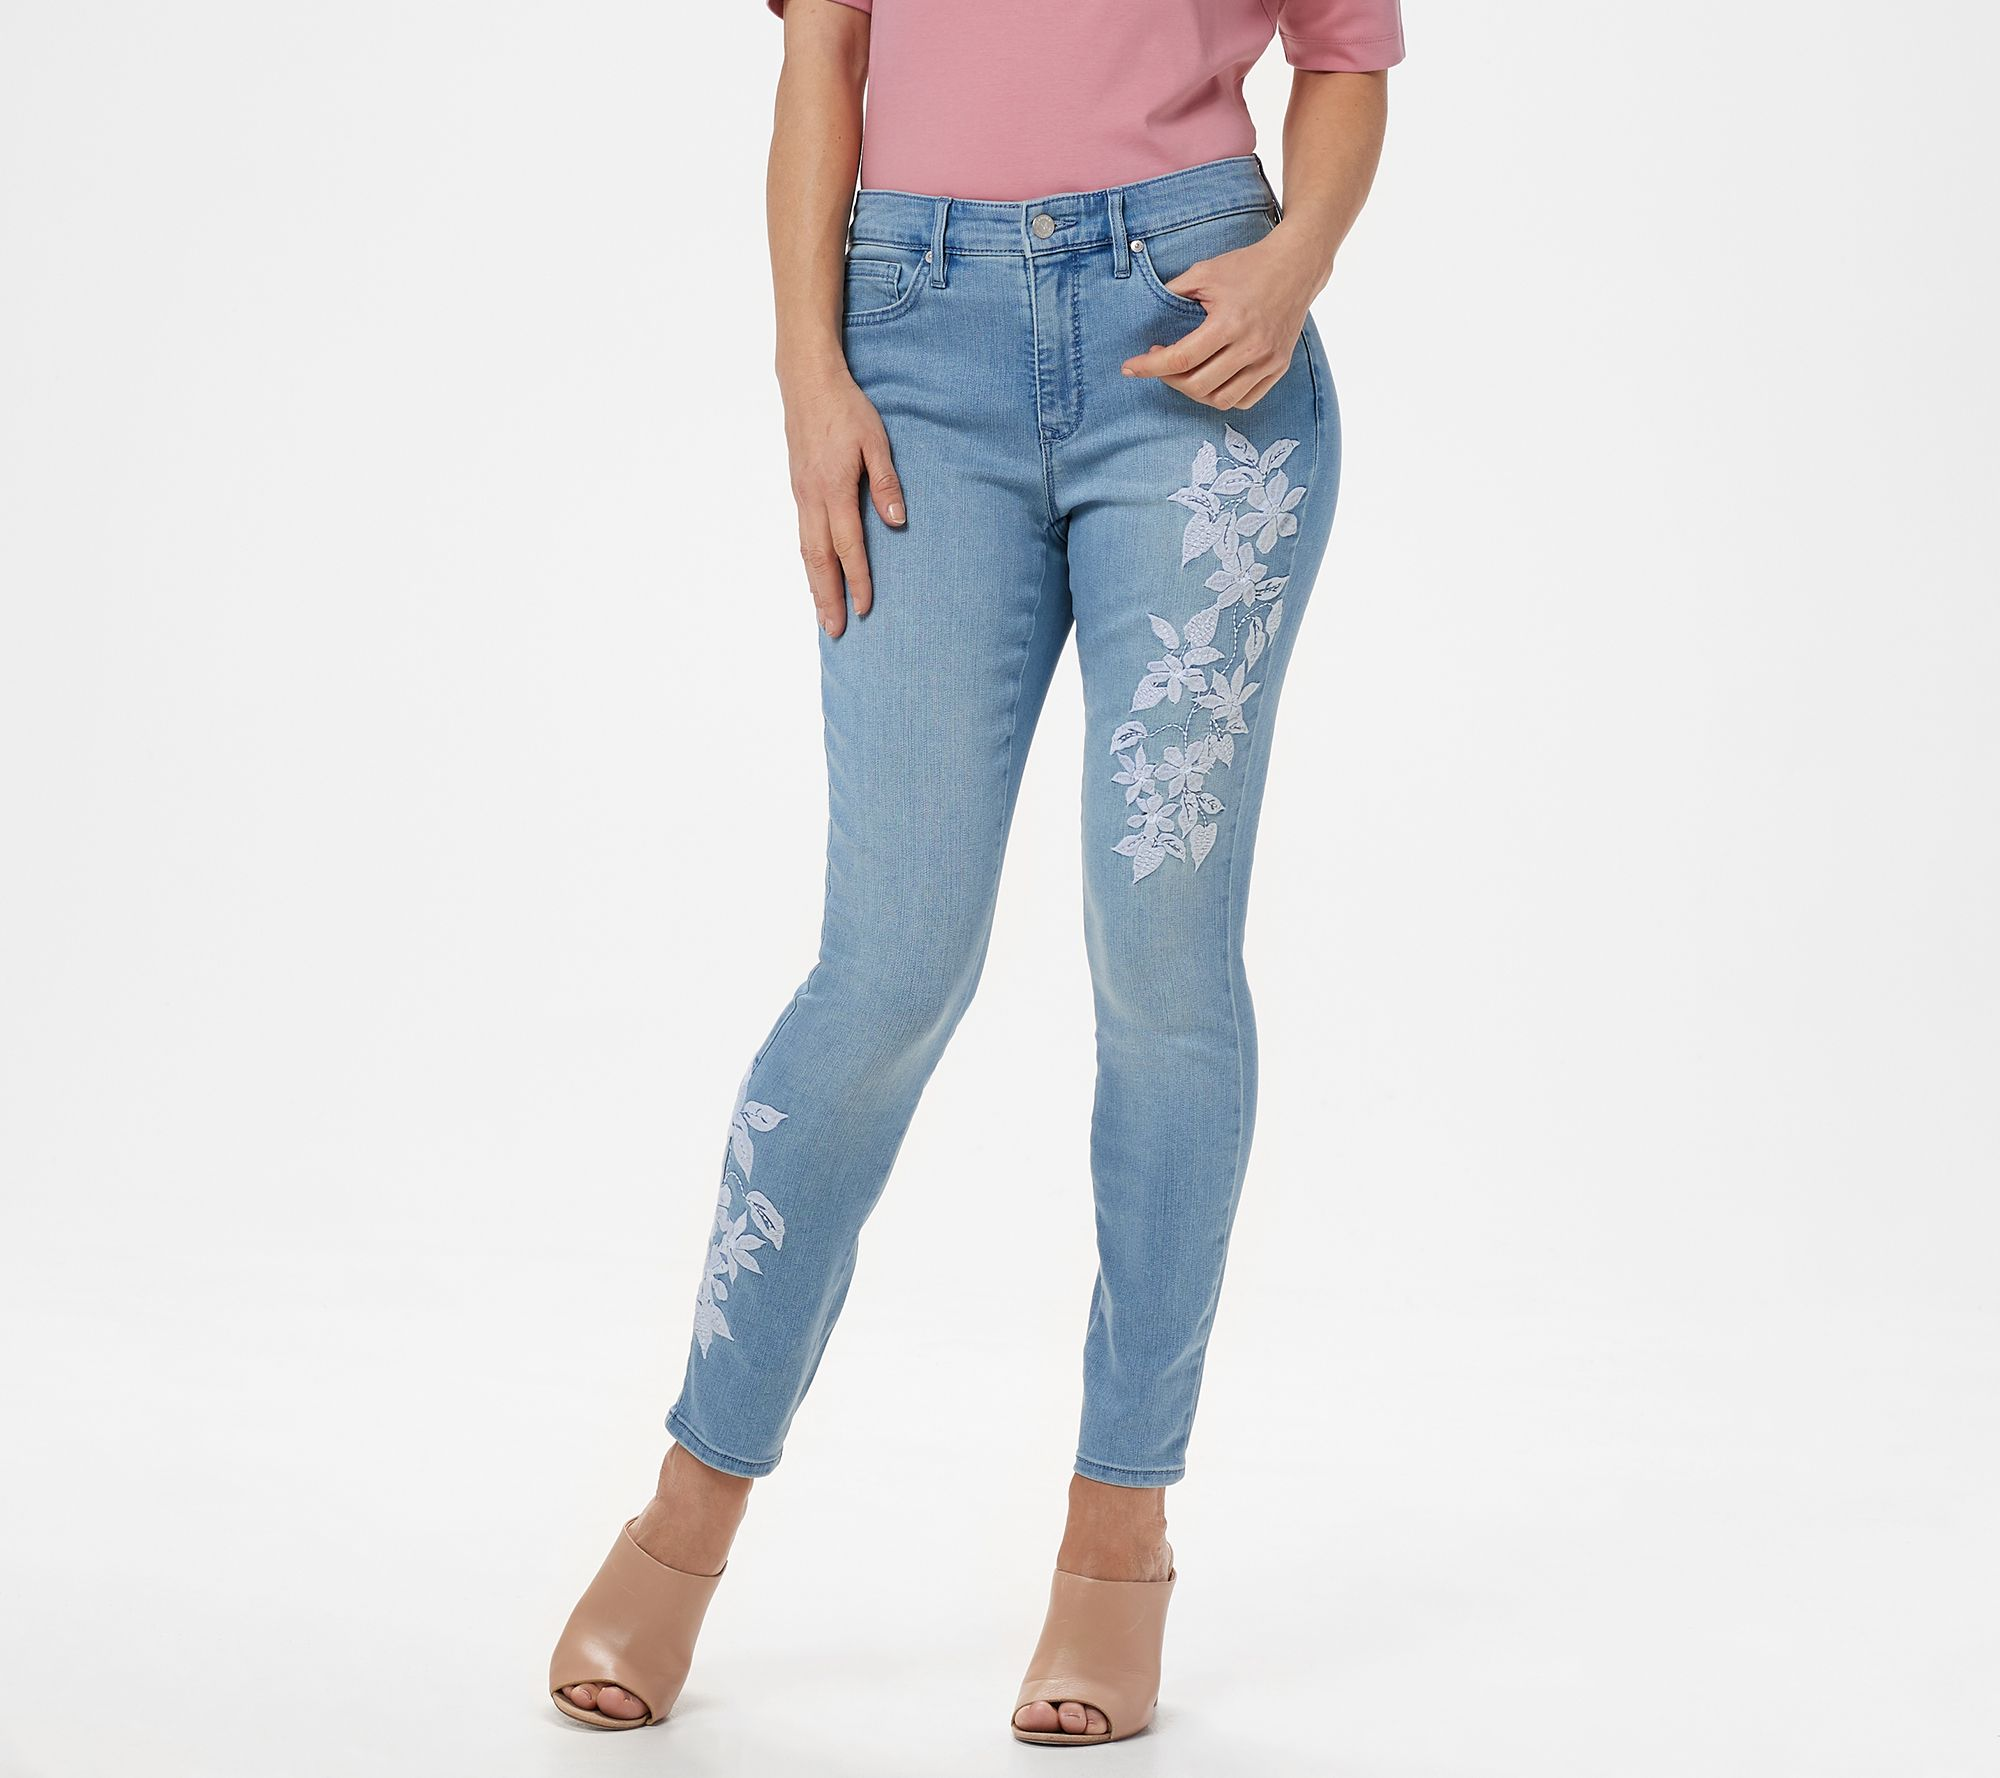 ac359063987 Martha Stewart Regular Embroidered 5-Pocket Ankle Jeans - Page 1 — QVC.com